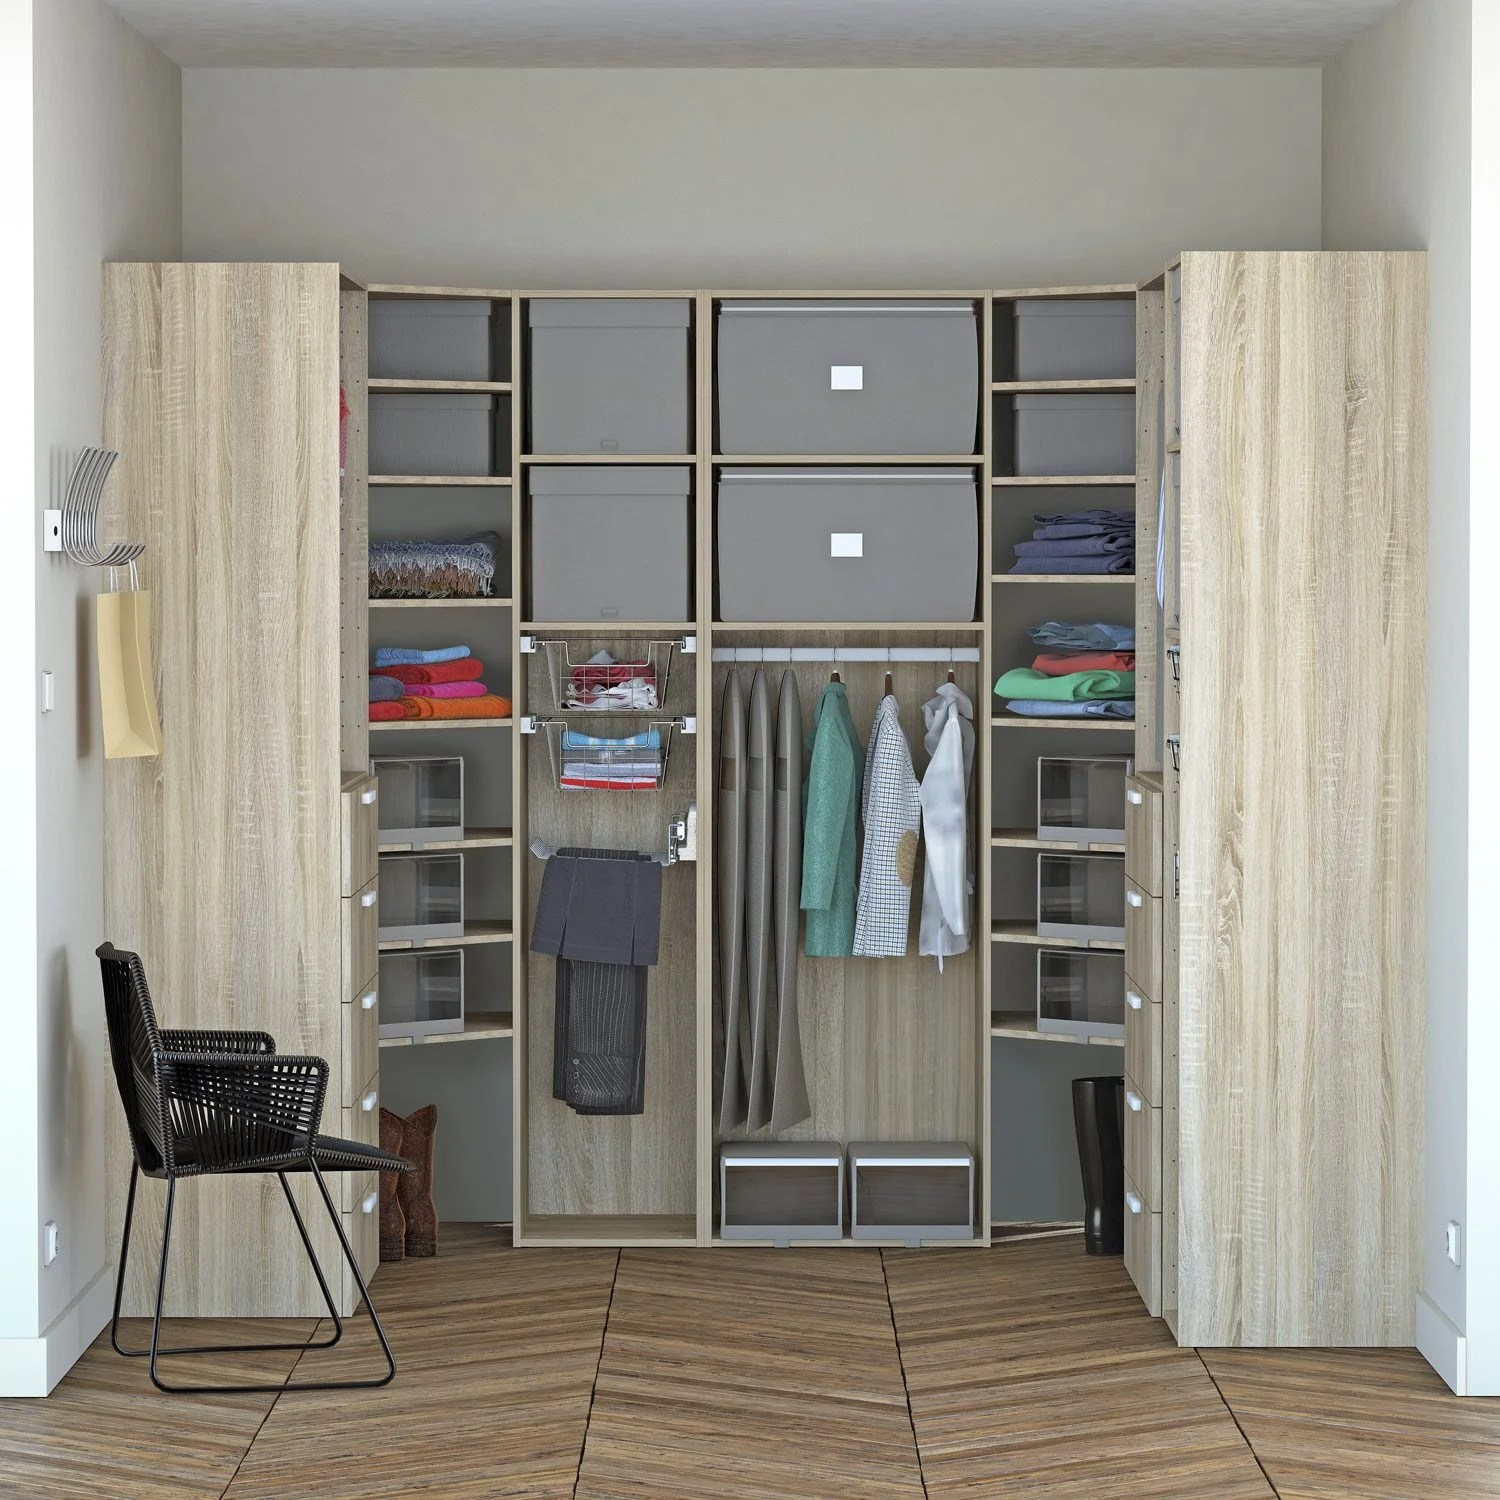 Dressing SPACEO Home Effet Chne Leroy Merlin